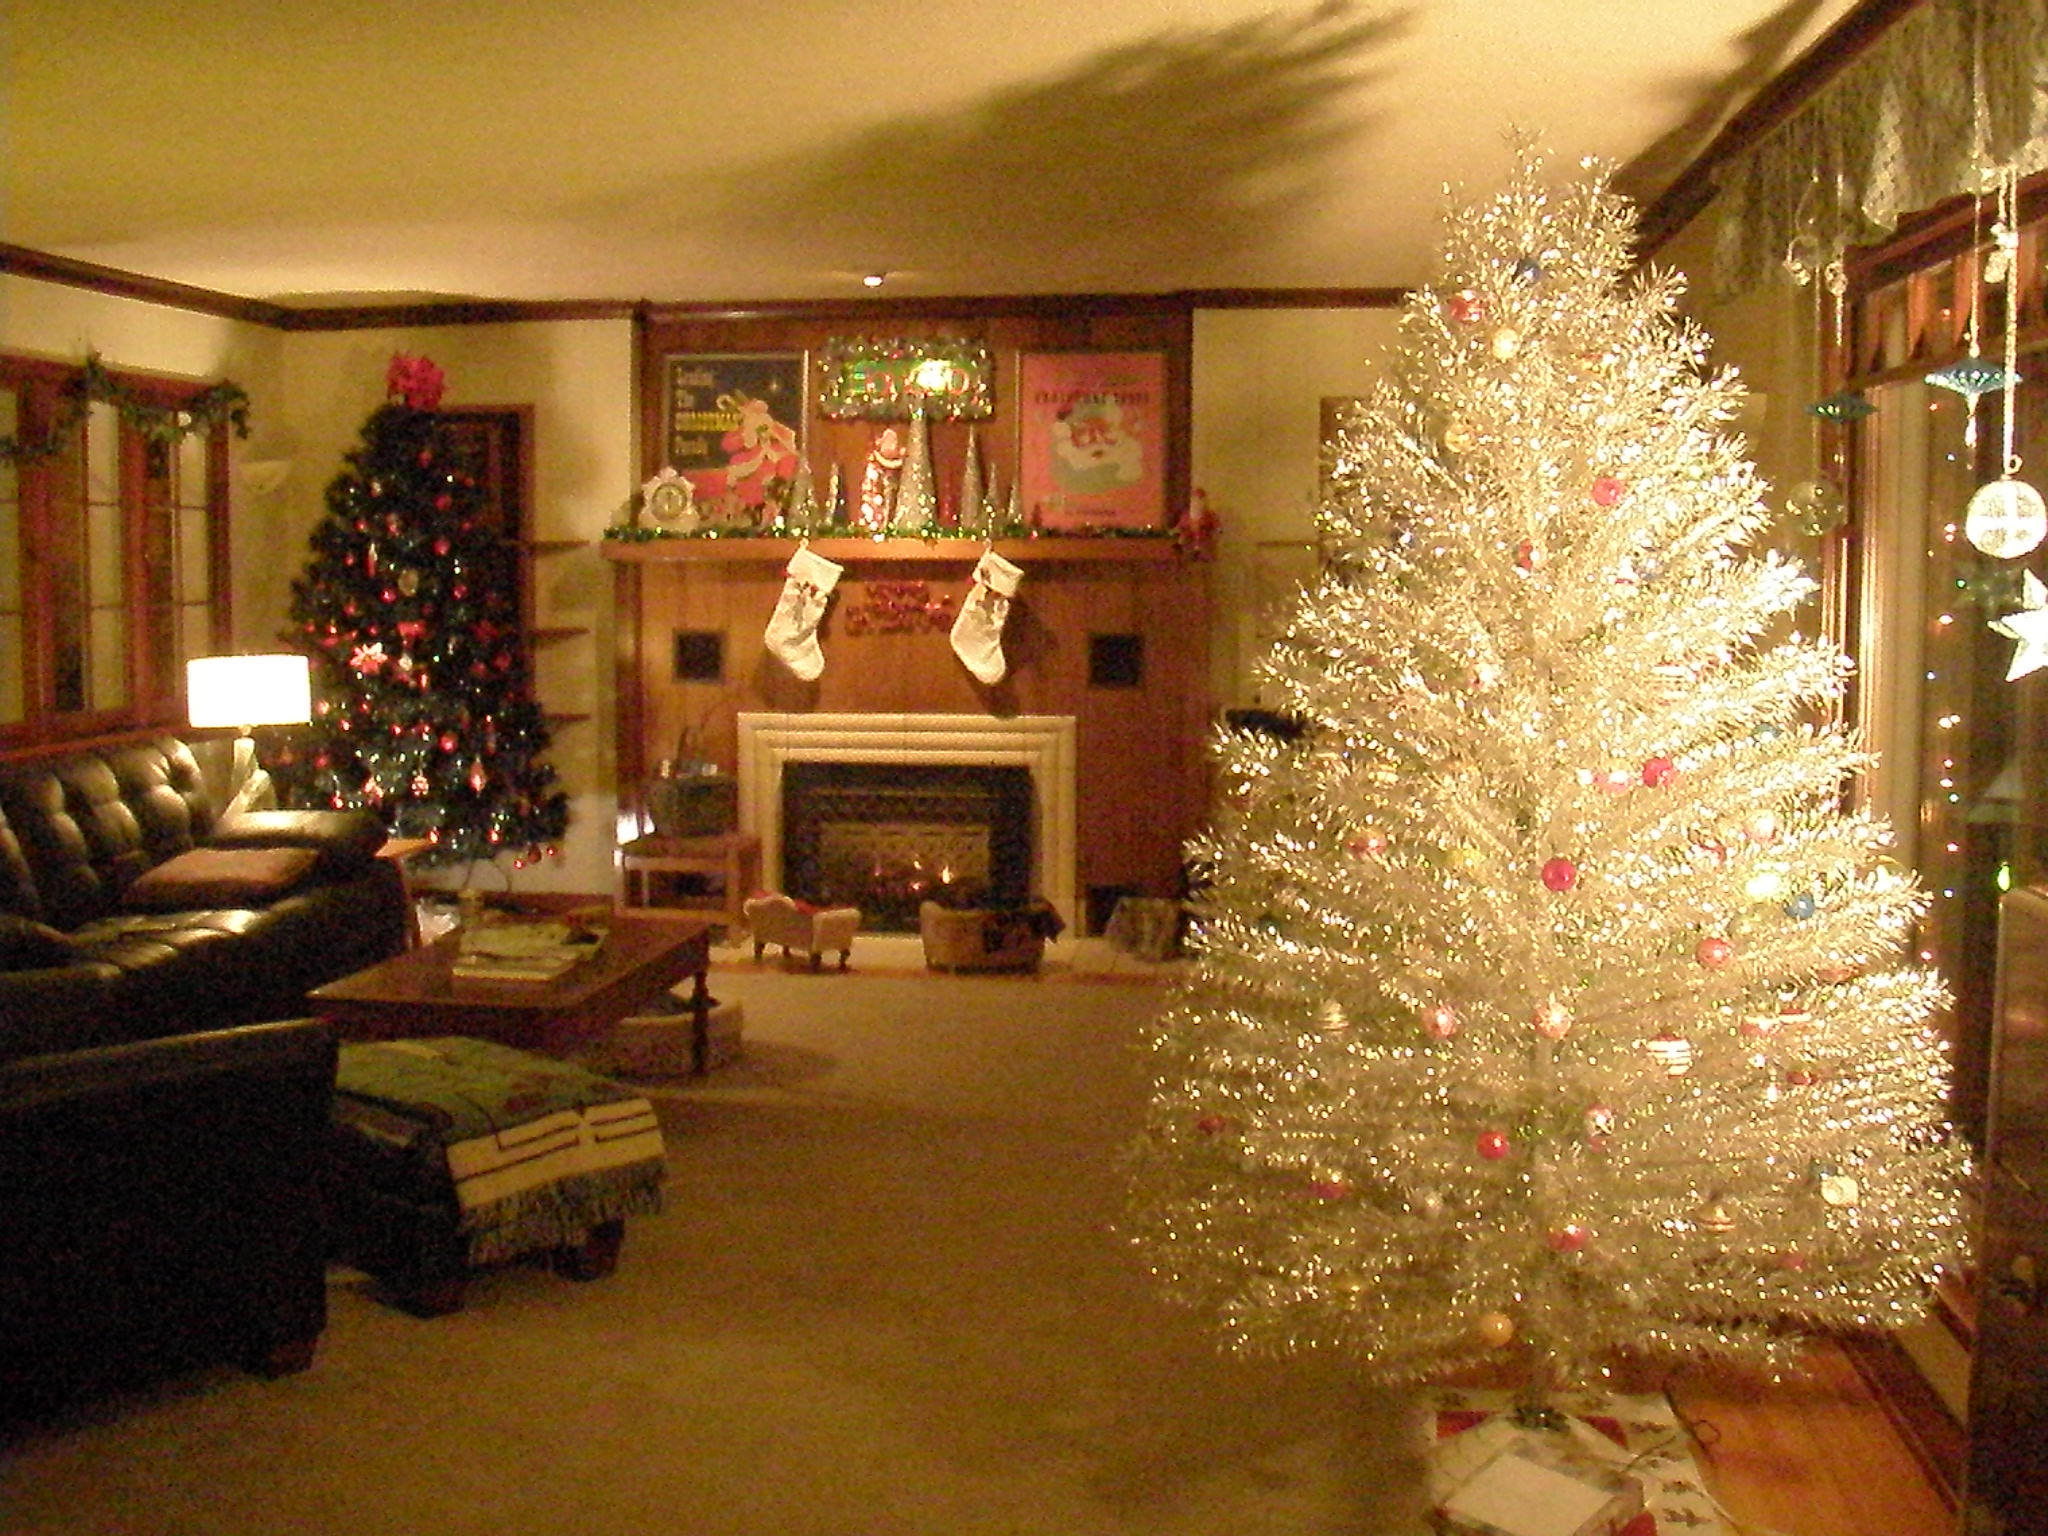 Upload Photos Of Your Holiday Decorations